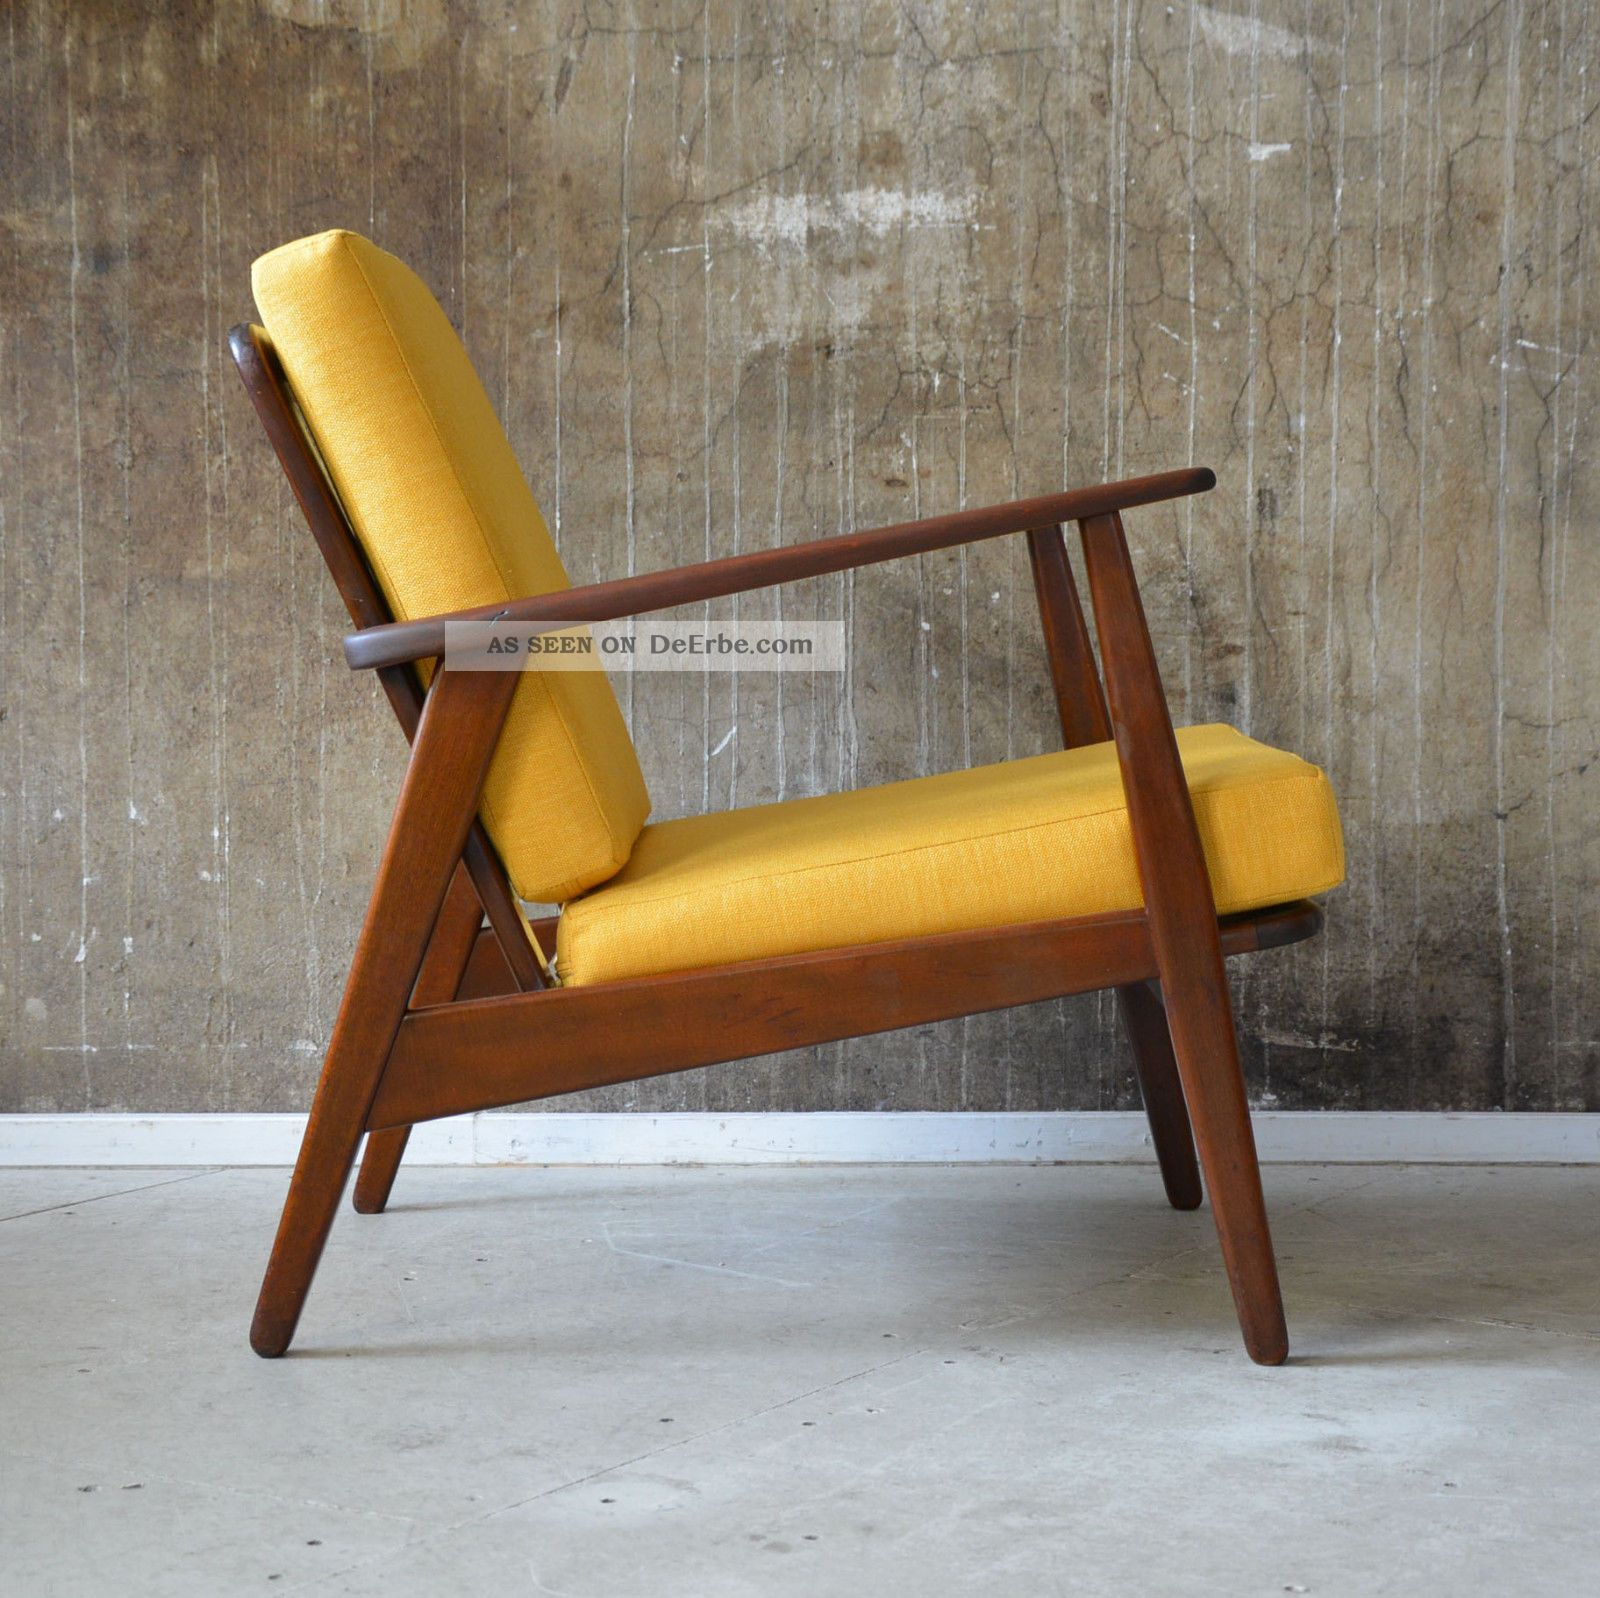 Danish design wohnzimmer  60er Teak Sessel Danish Design 60s Easy Chair Vintage Midcentury ...